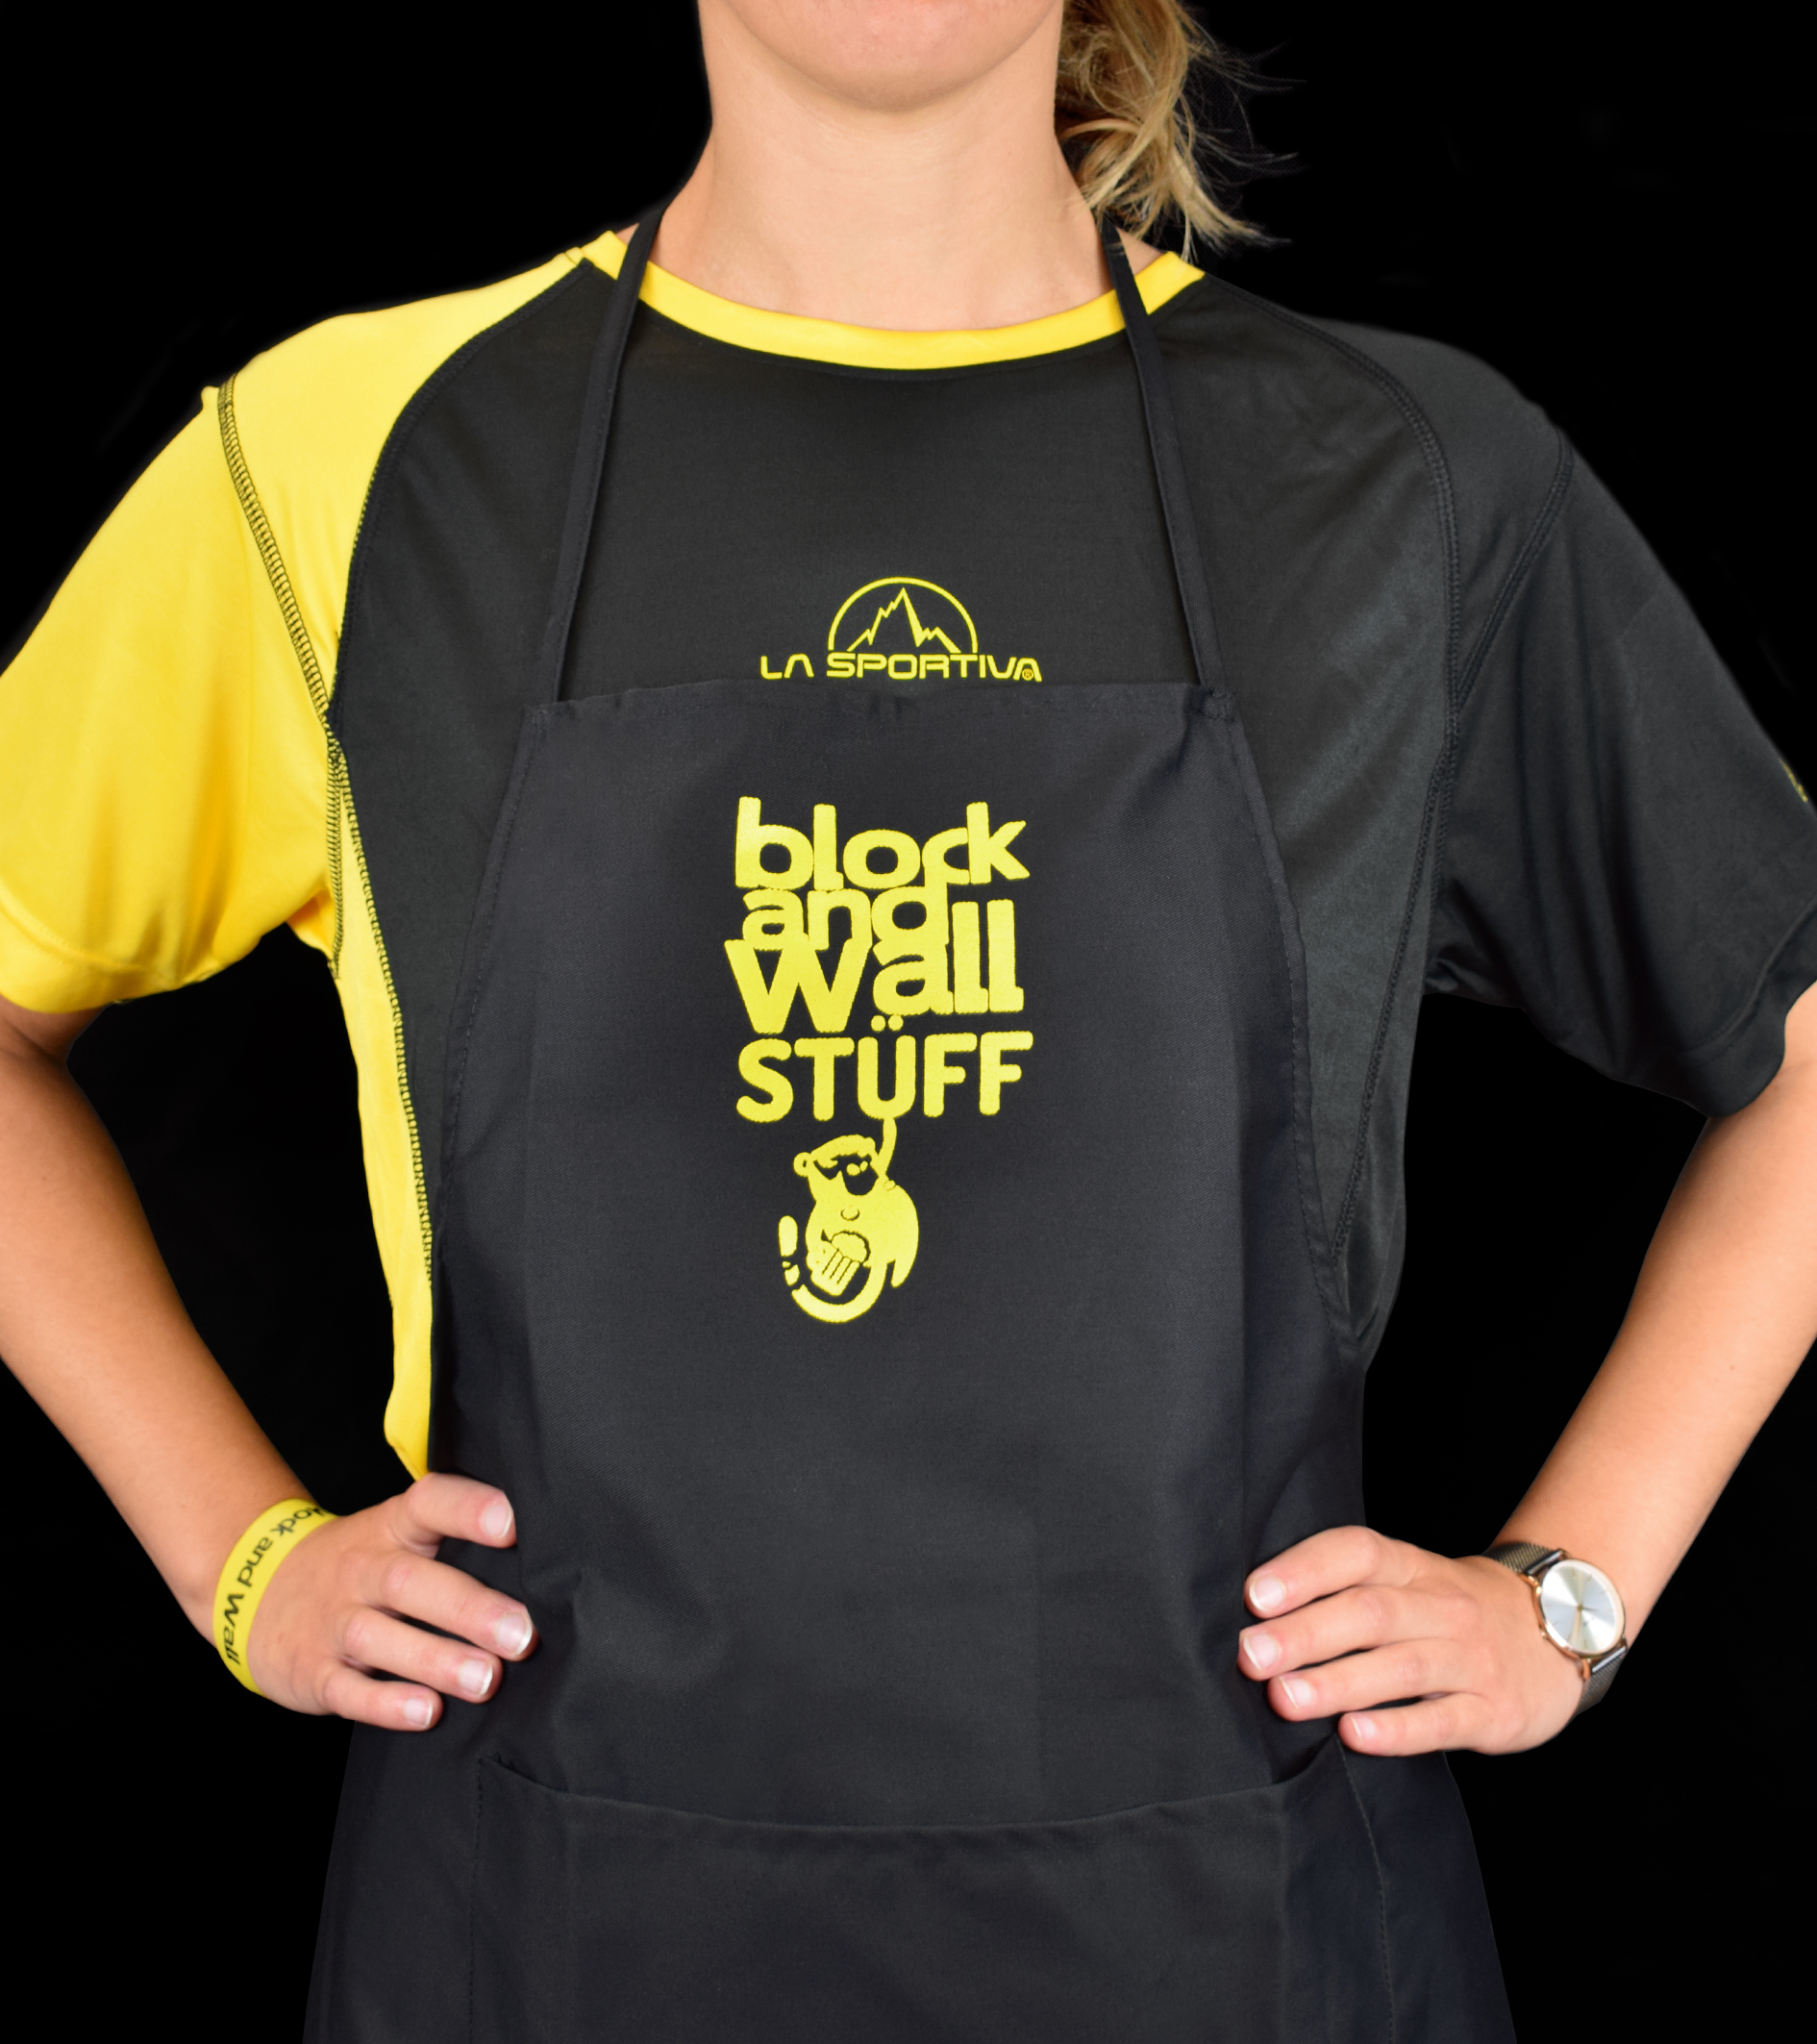 Grembiule personalizzato Block and Wall La Sportiva